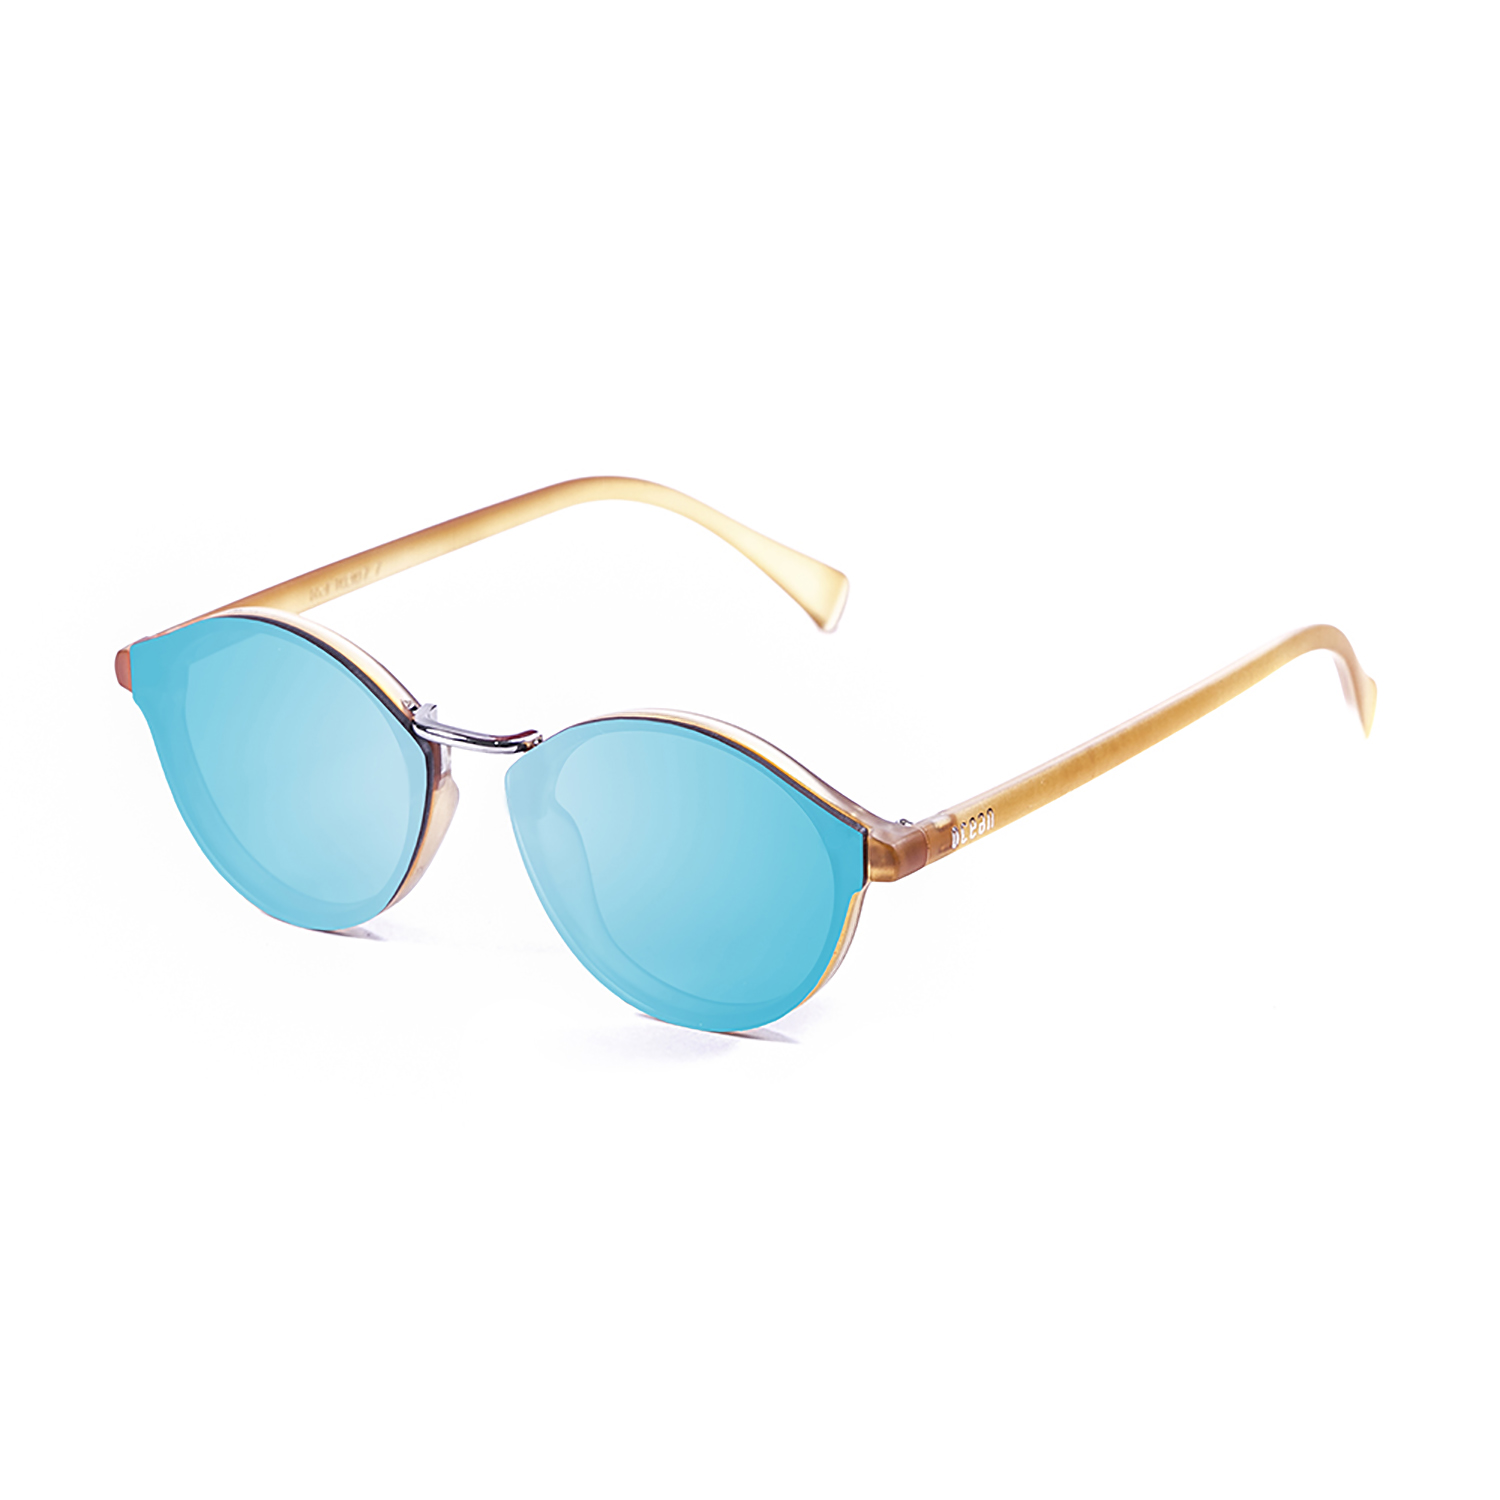 OCEAN LOIRET matte light brown frame with blue sky revo flat lens 10307.6